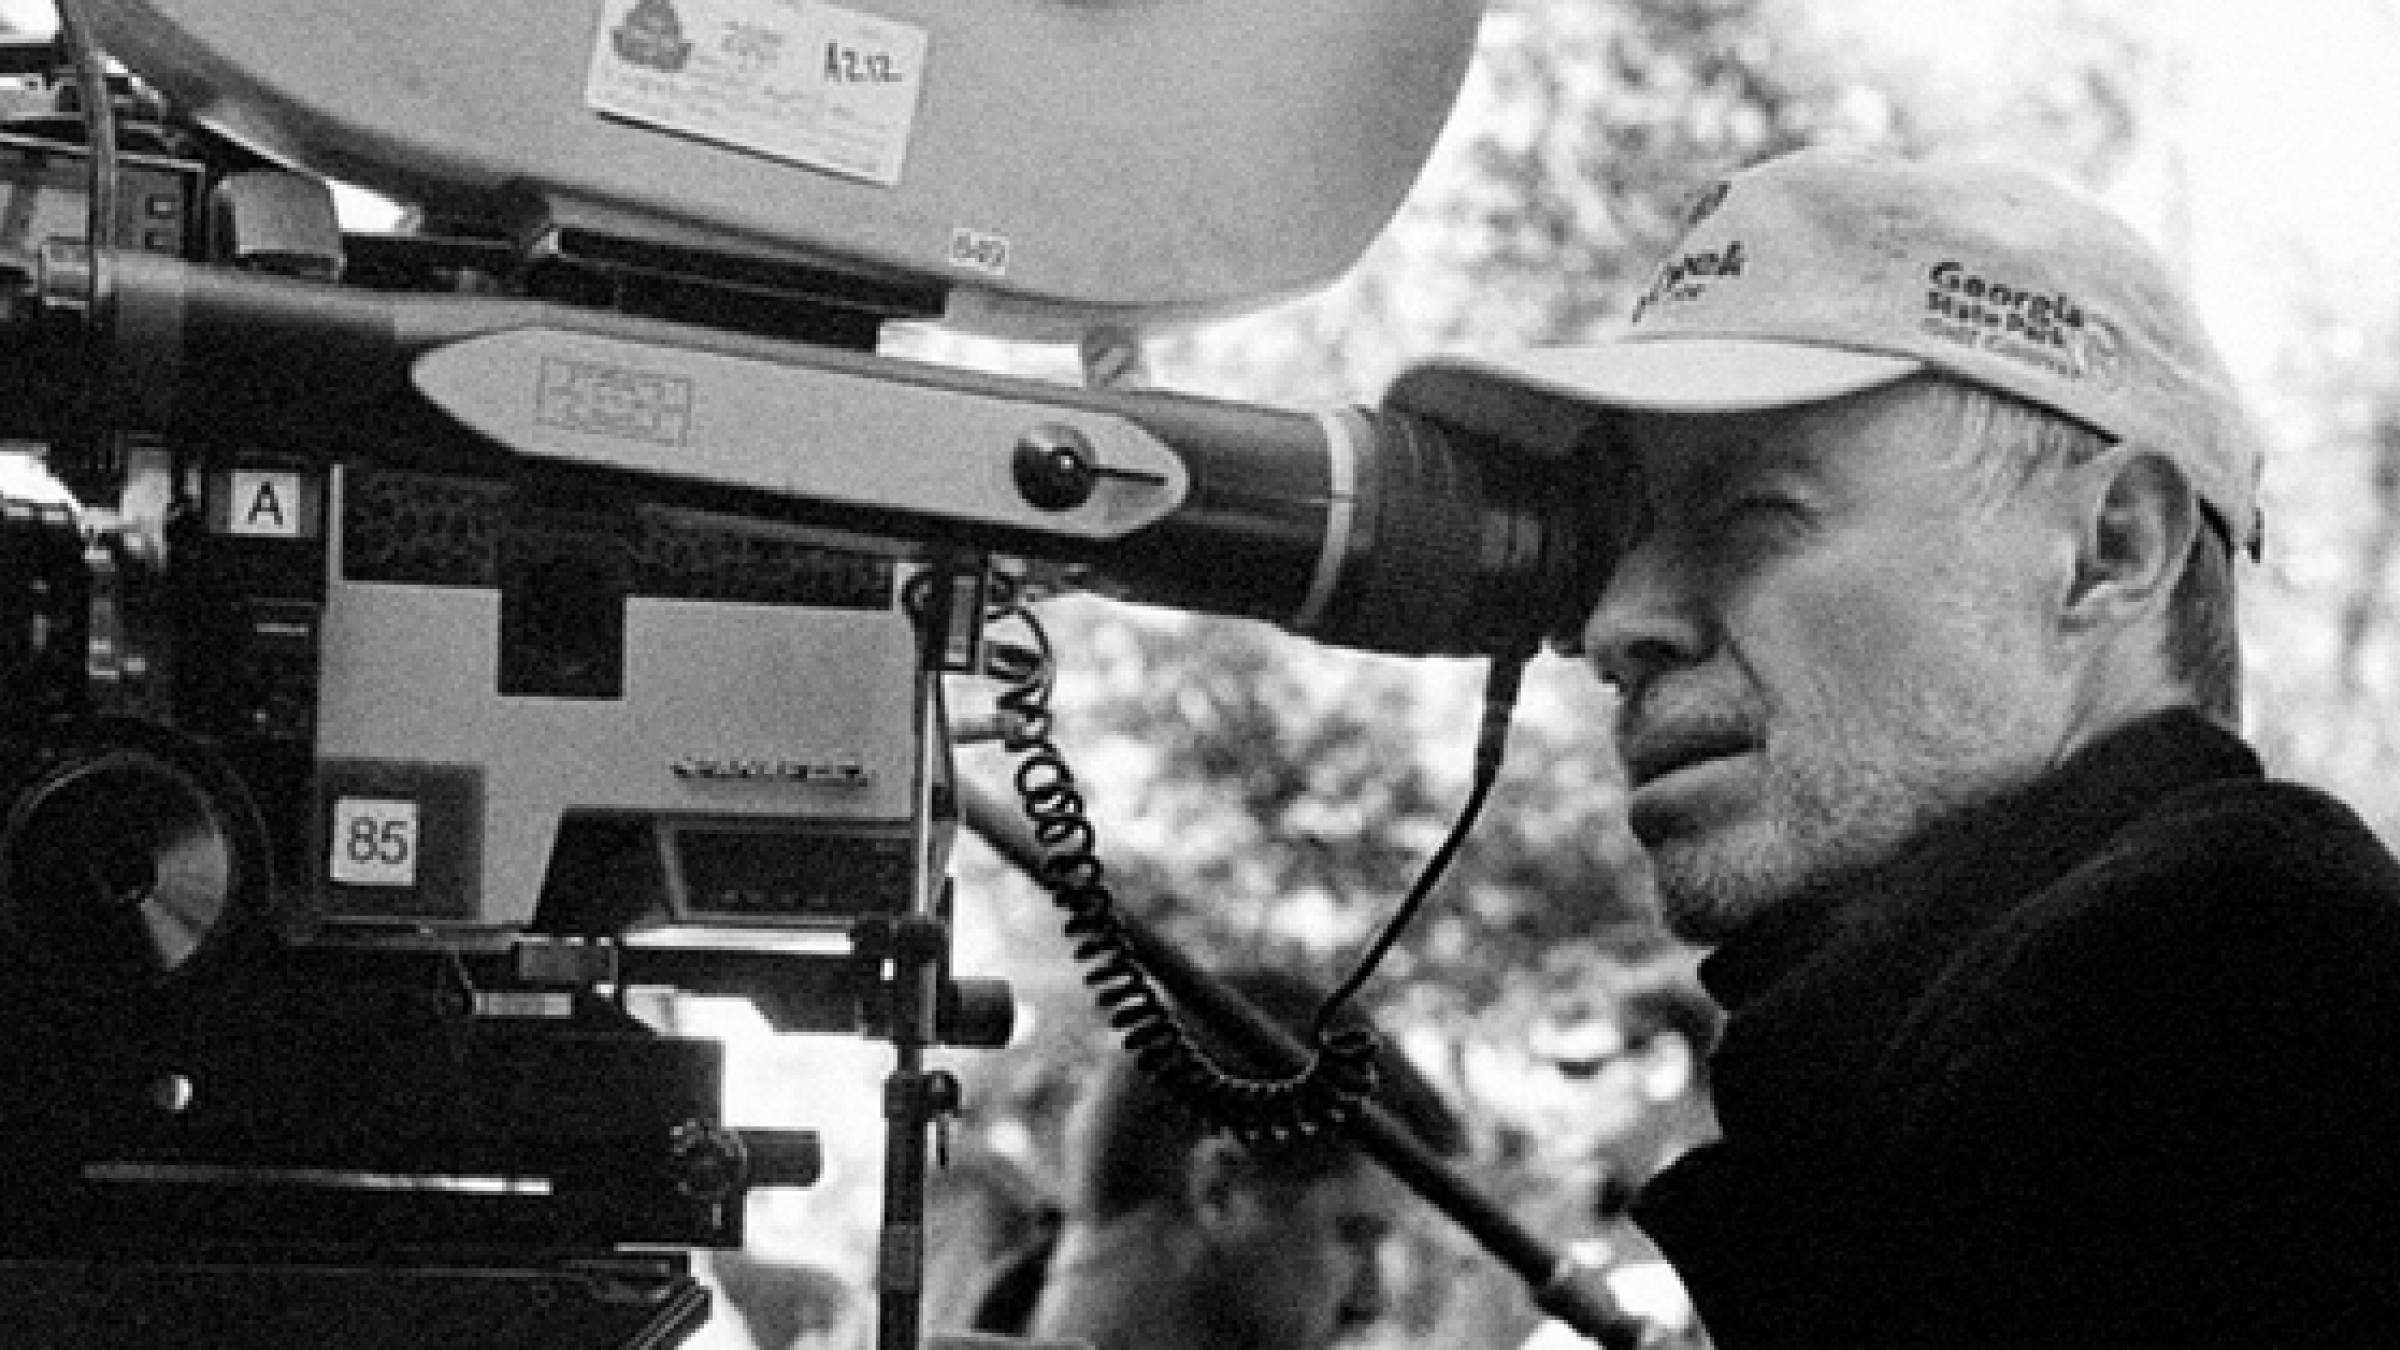 21 World-Renowned Cinematographers Share the Shots that Heavily Influenced Their Work